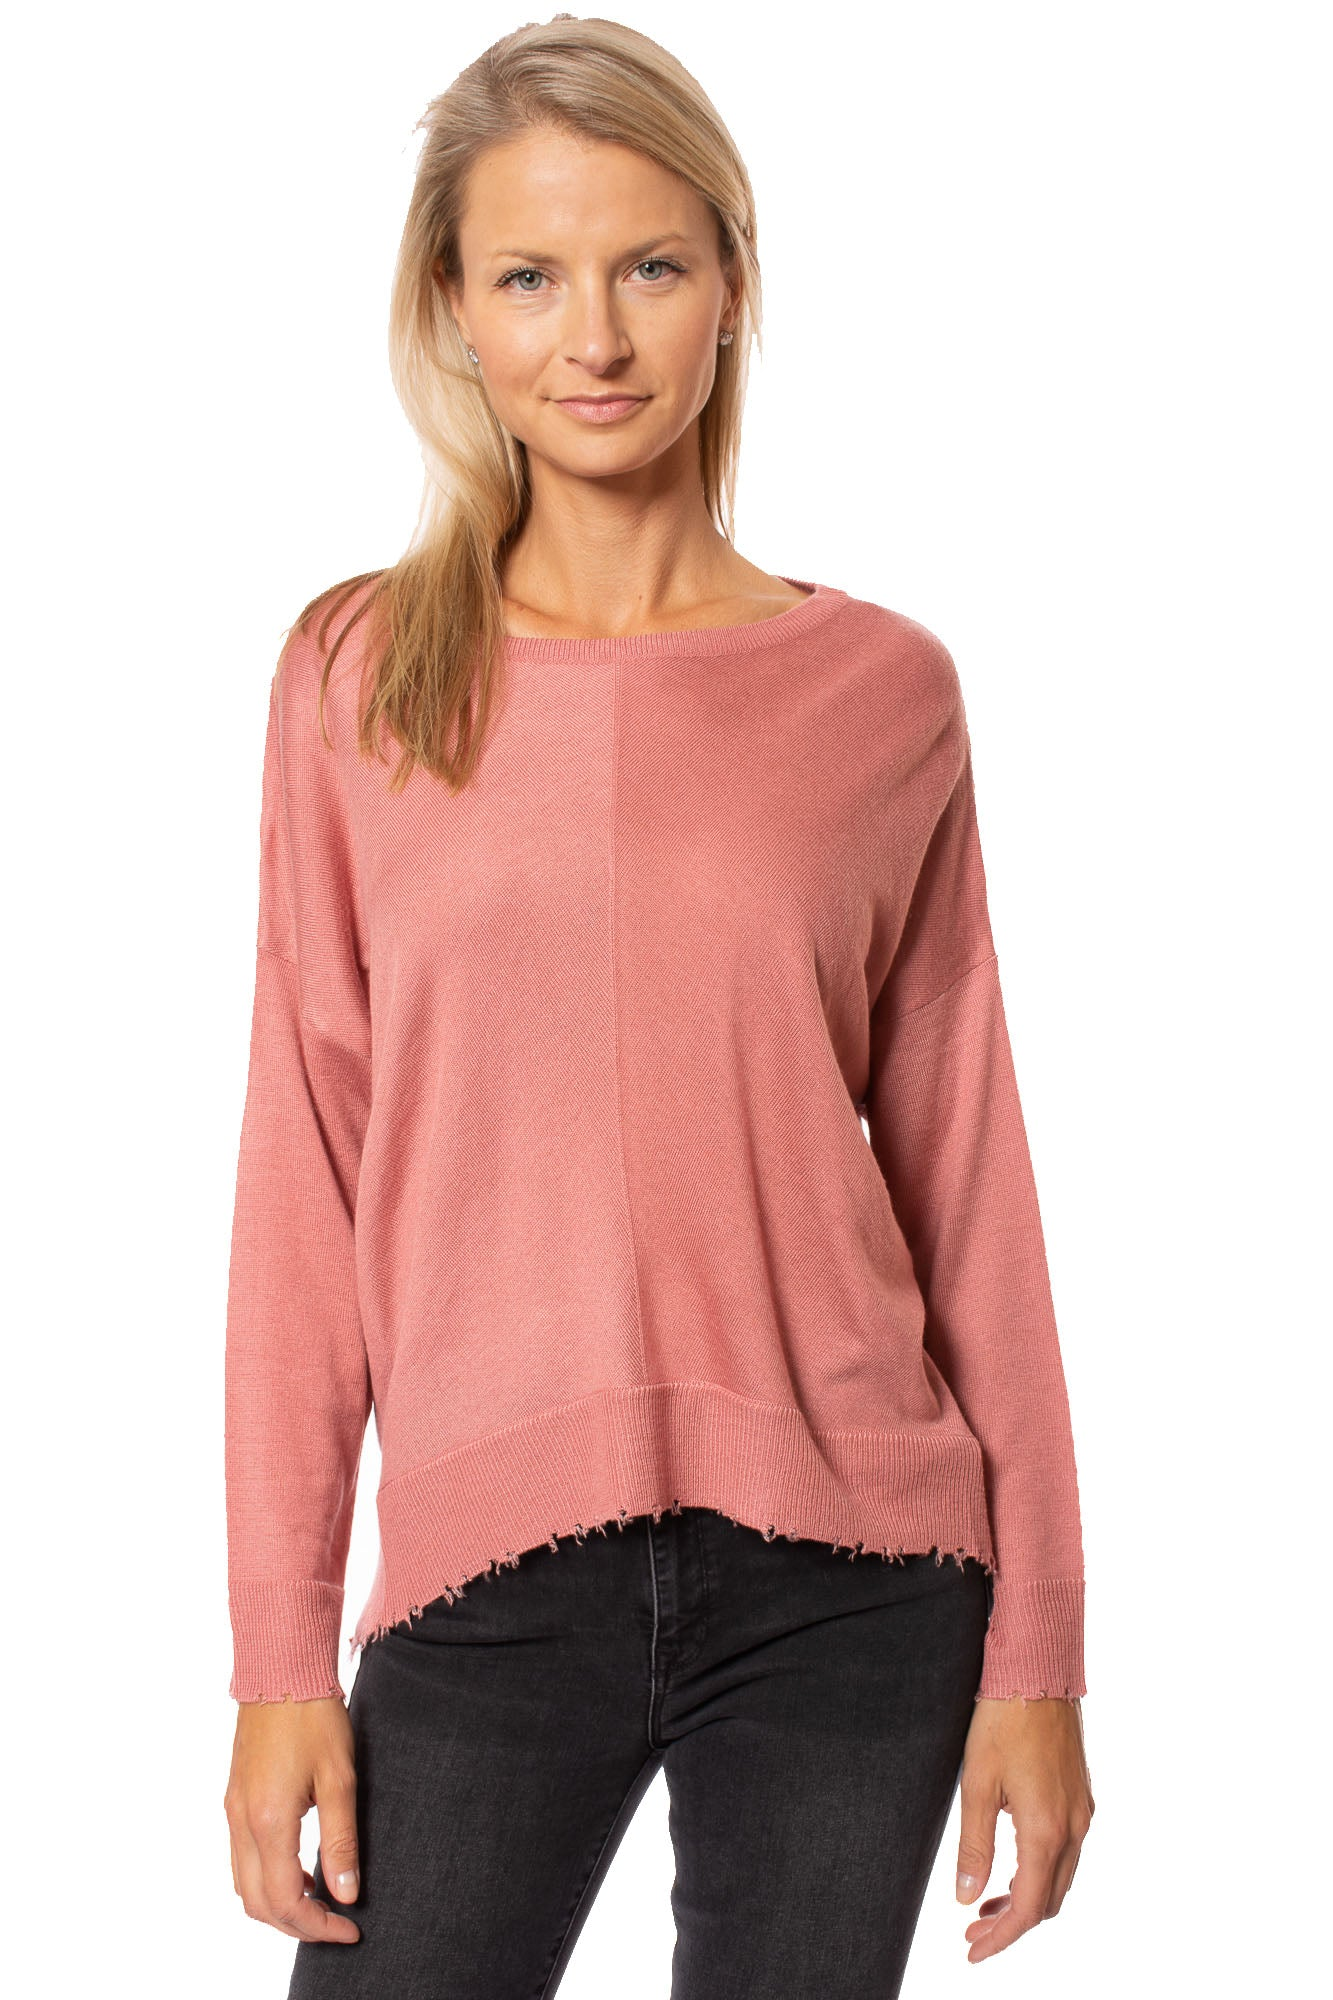 Kerisma - Lawson Sweater W/Distressed Fringe Hem (M3304, Rose)